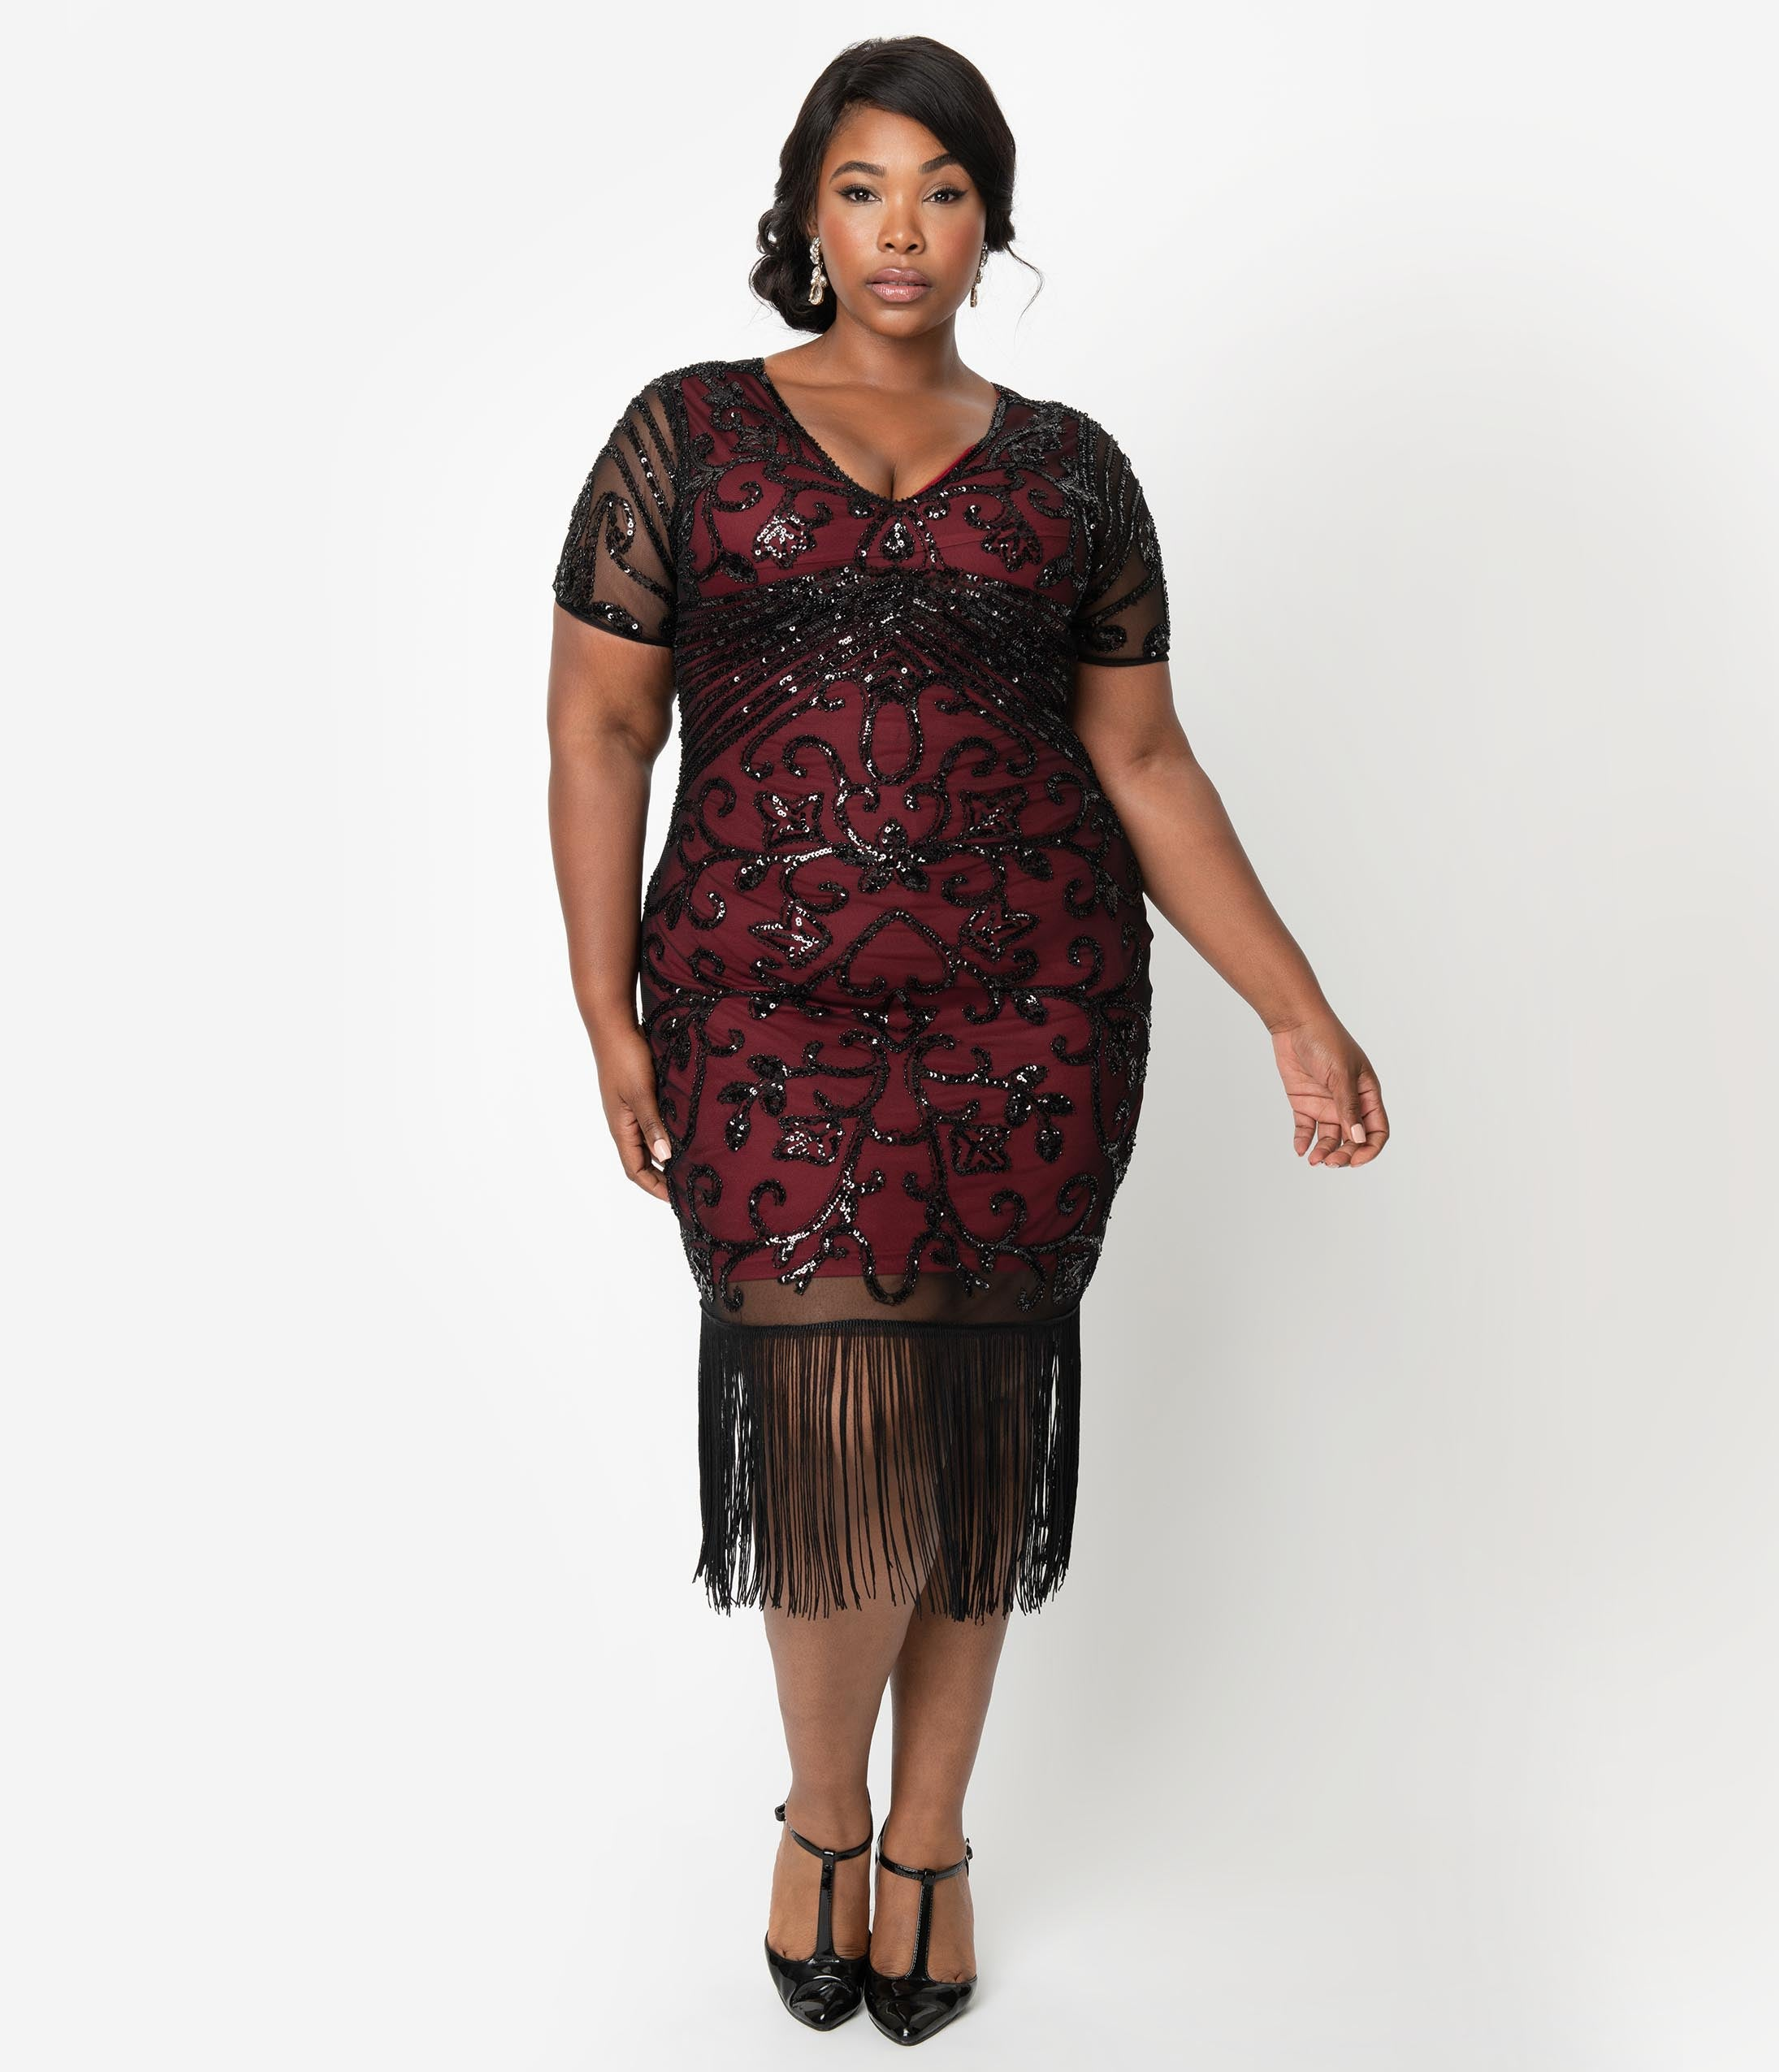 1920s Plus Size Flapper Dresses, Gatsby Dresses, Flapper Costumes Unique Vintage Plus Size Burgundy Red  Black Beaded Sleeved Troyes Cocktail Flapper Dress $98.00 AT vintagedancer.com